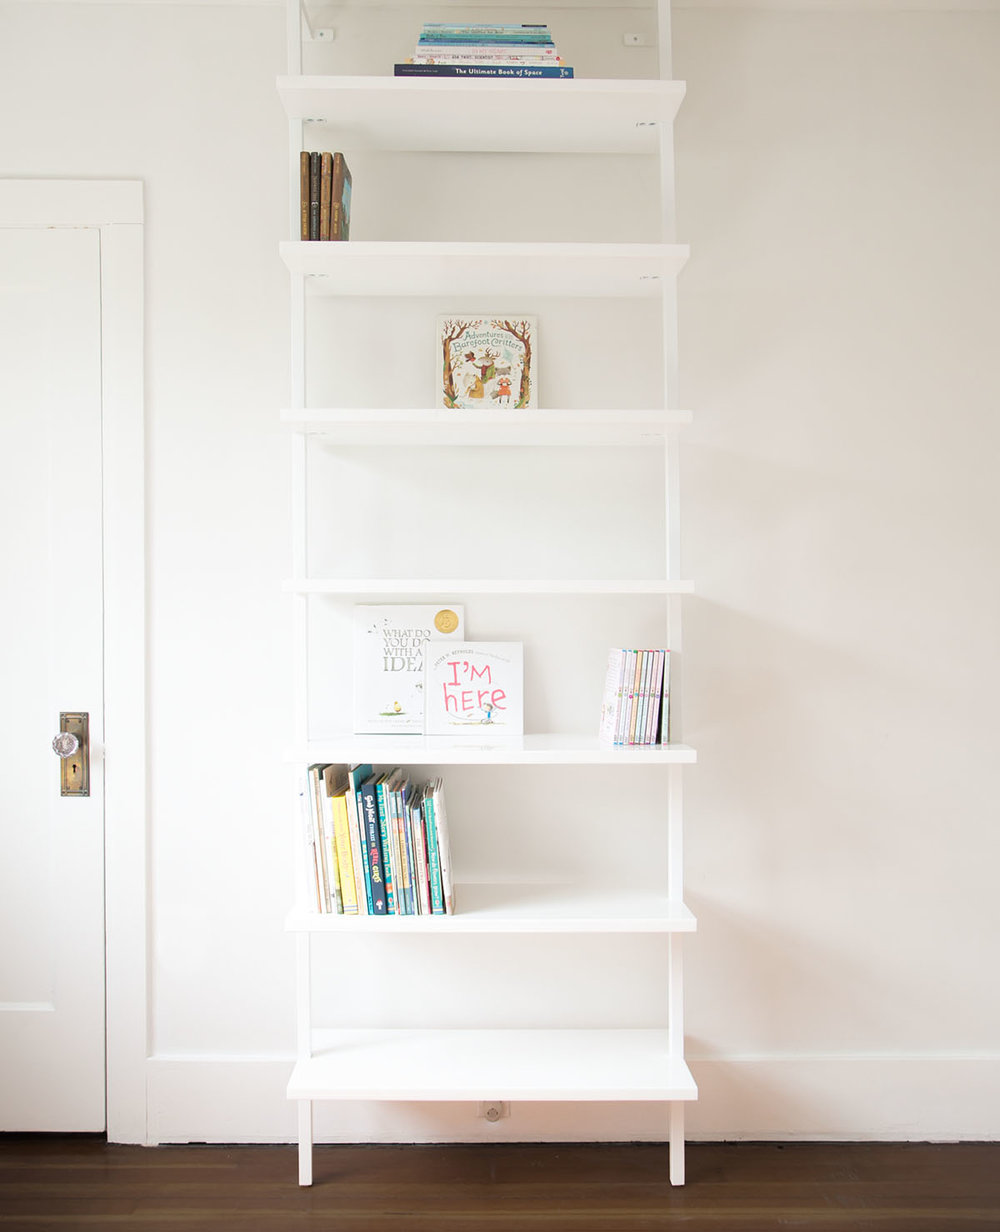 cb2 stairway bookshelf with books - this is step 2